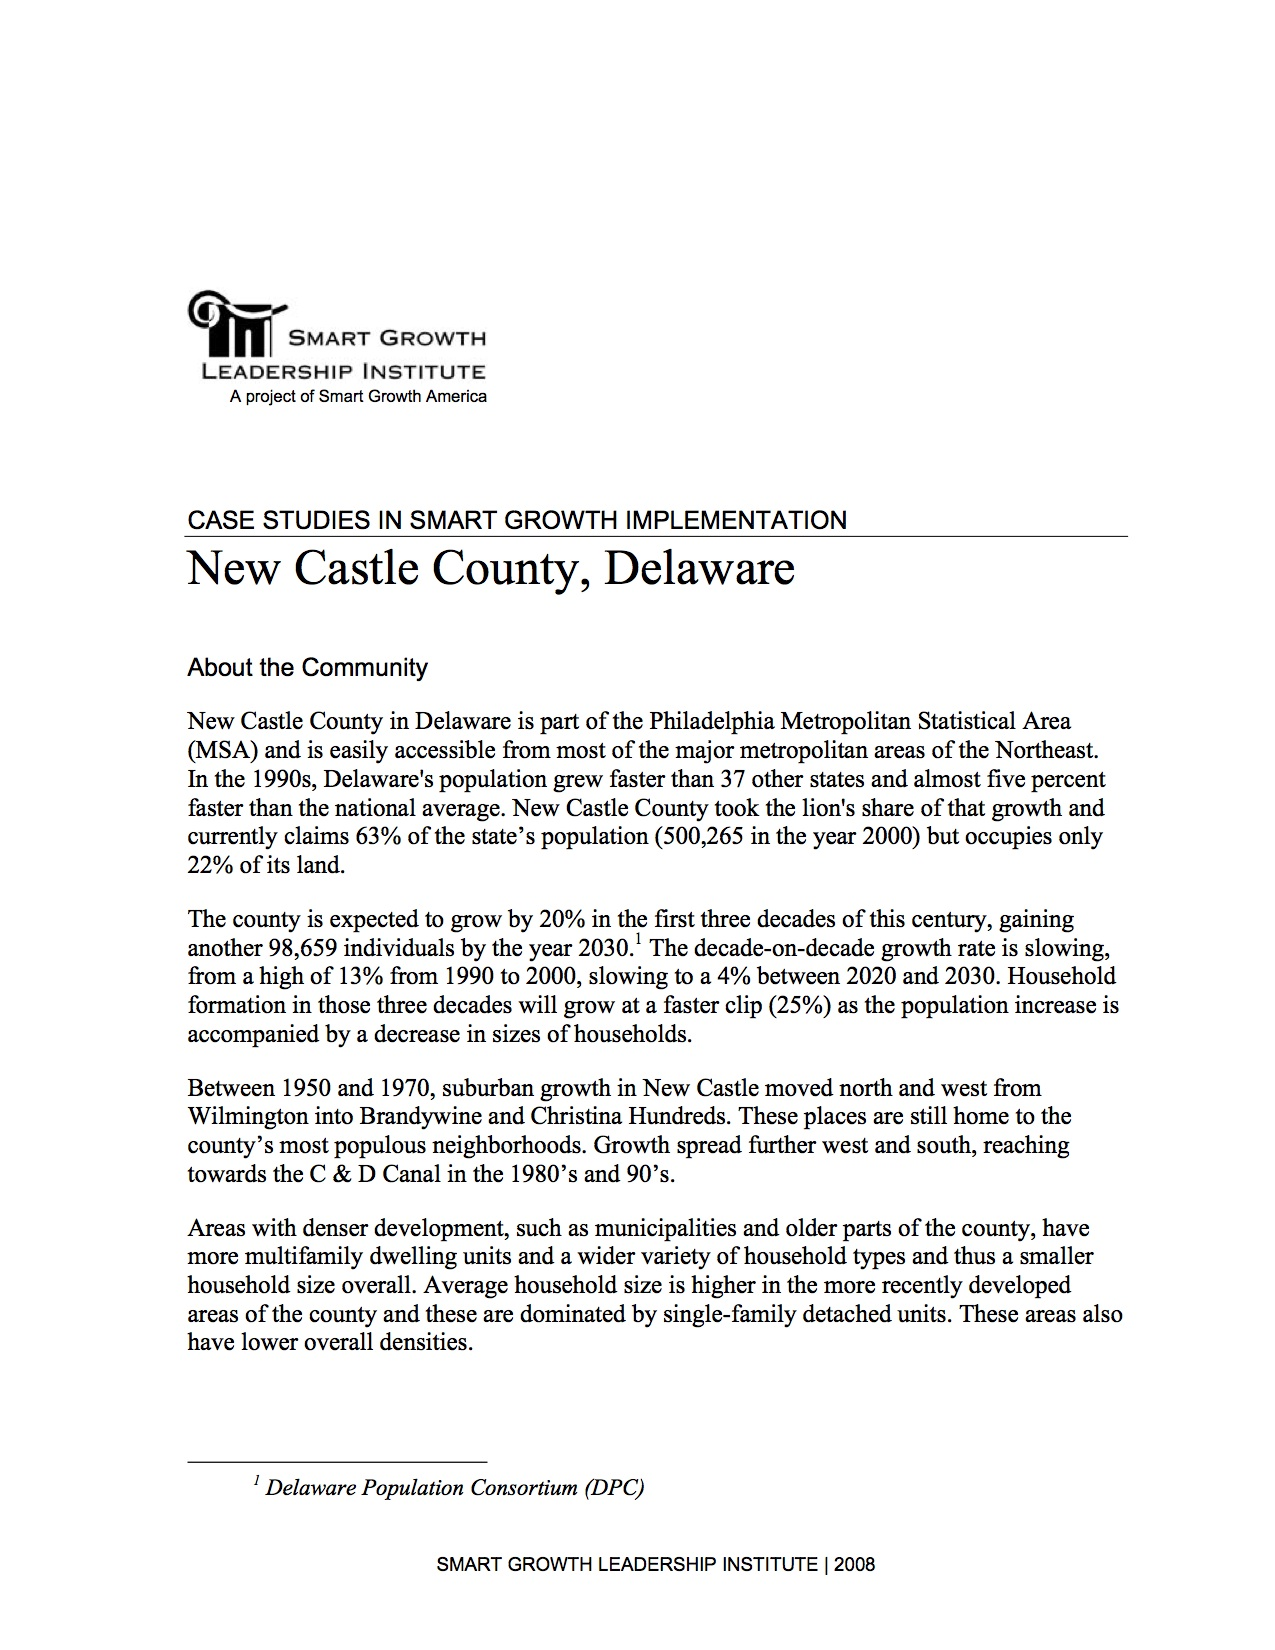 Case Studies in Smart Growth Implementation: New Castle County, Delaware